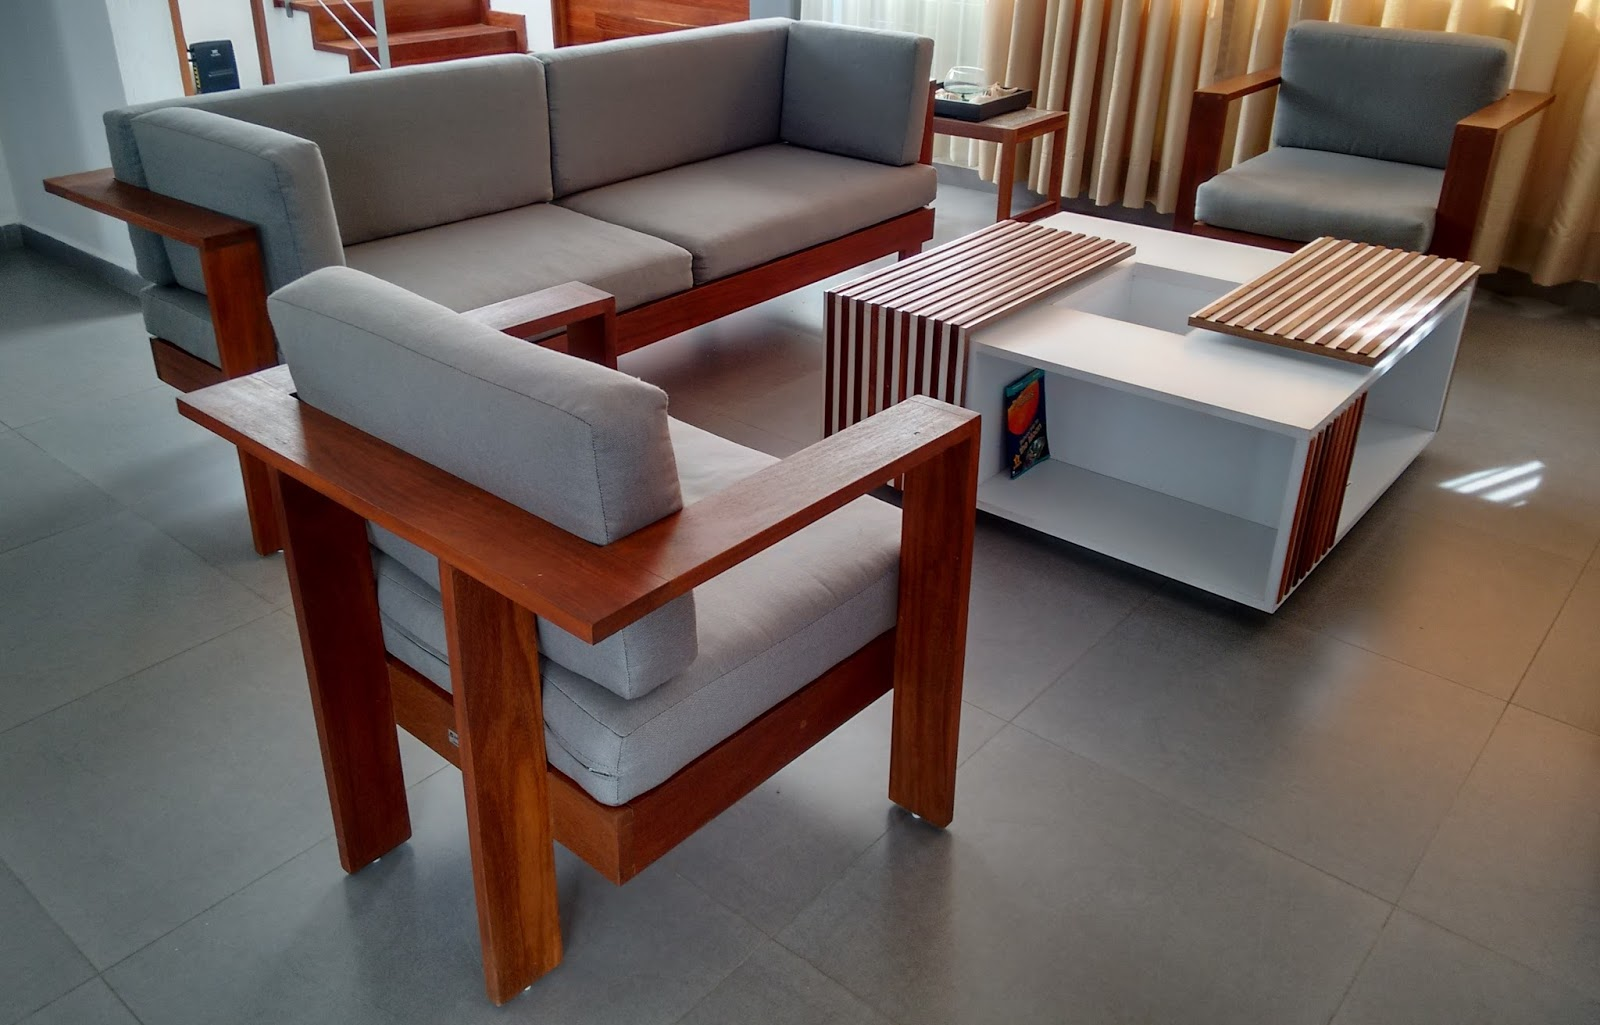 Arkydeck for Muebles de exterior